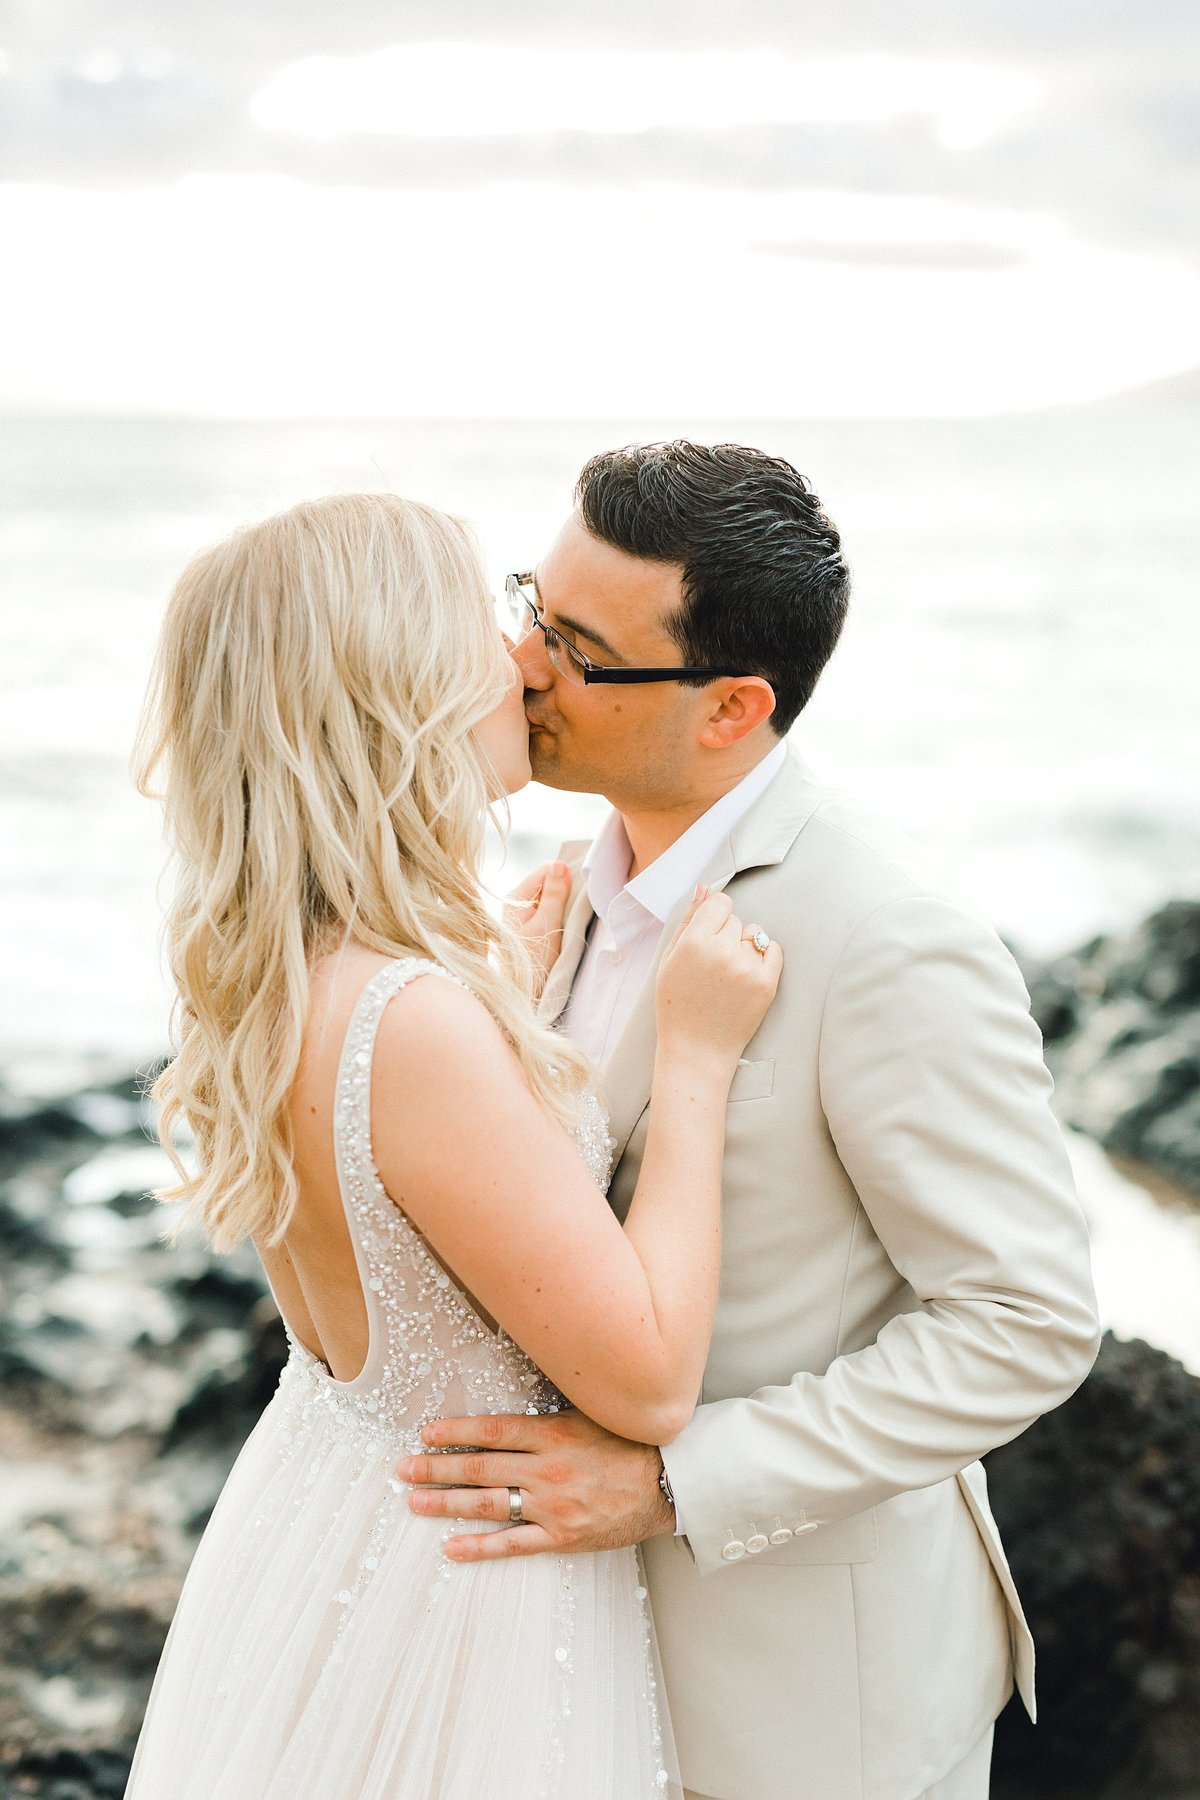 jenny_vargas-photography-maui-wedding-photographer-maui-wedding-photography-maui-photographer-maui-photographers-maui-elopement-photographer-maui-elopement-maui-wedding-maui-engagement-photographer_0948